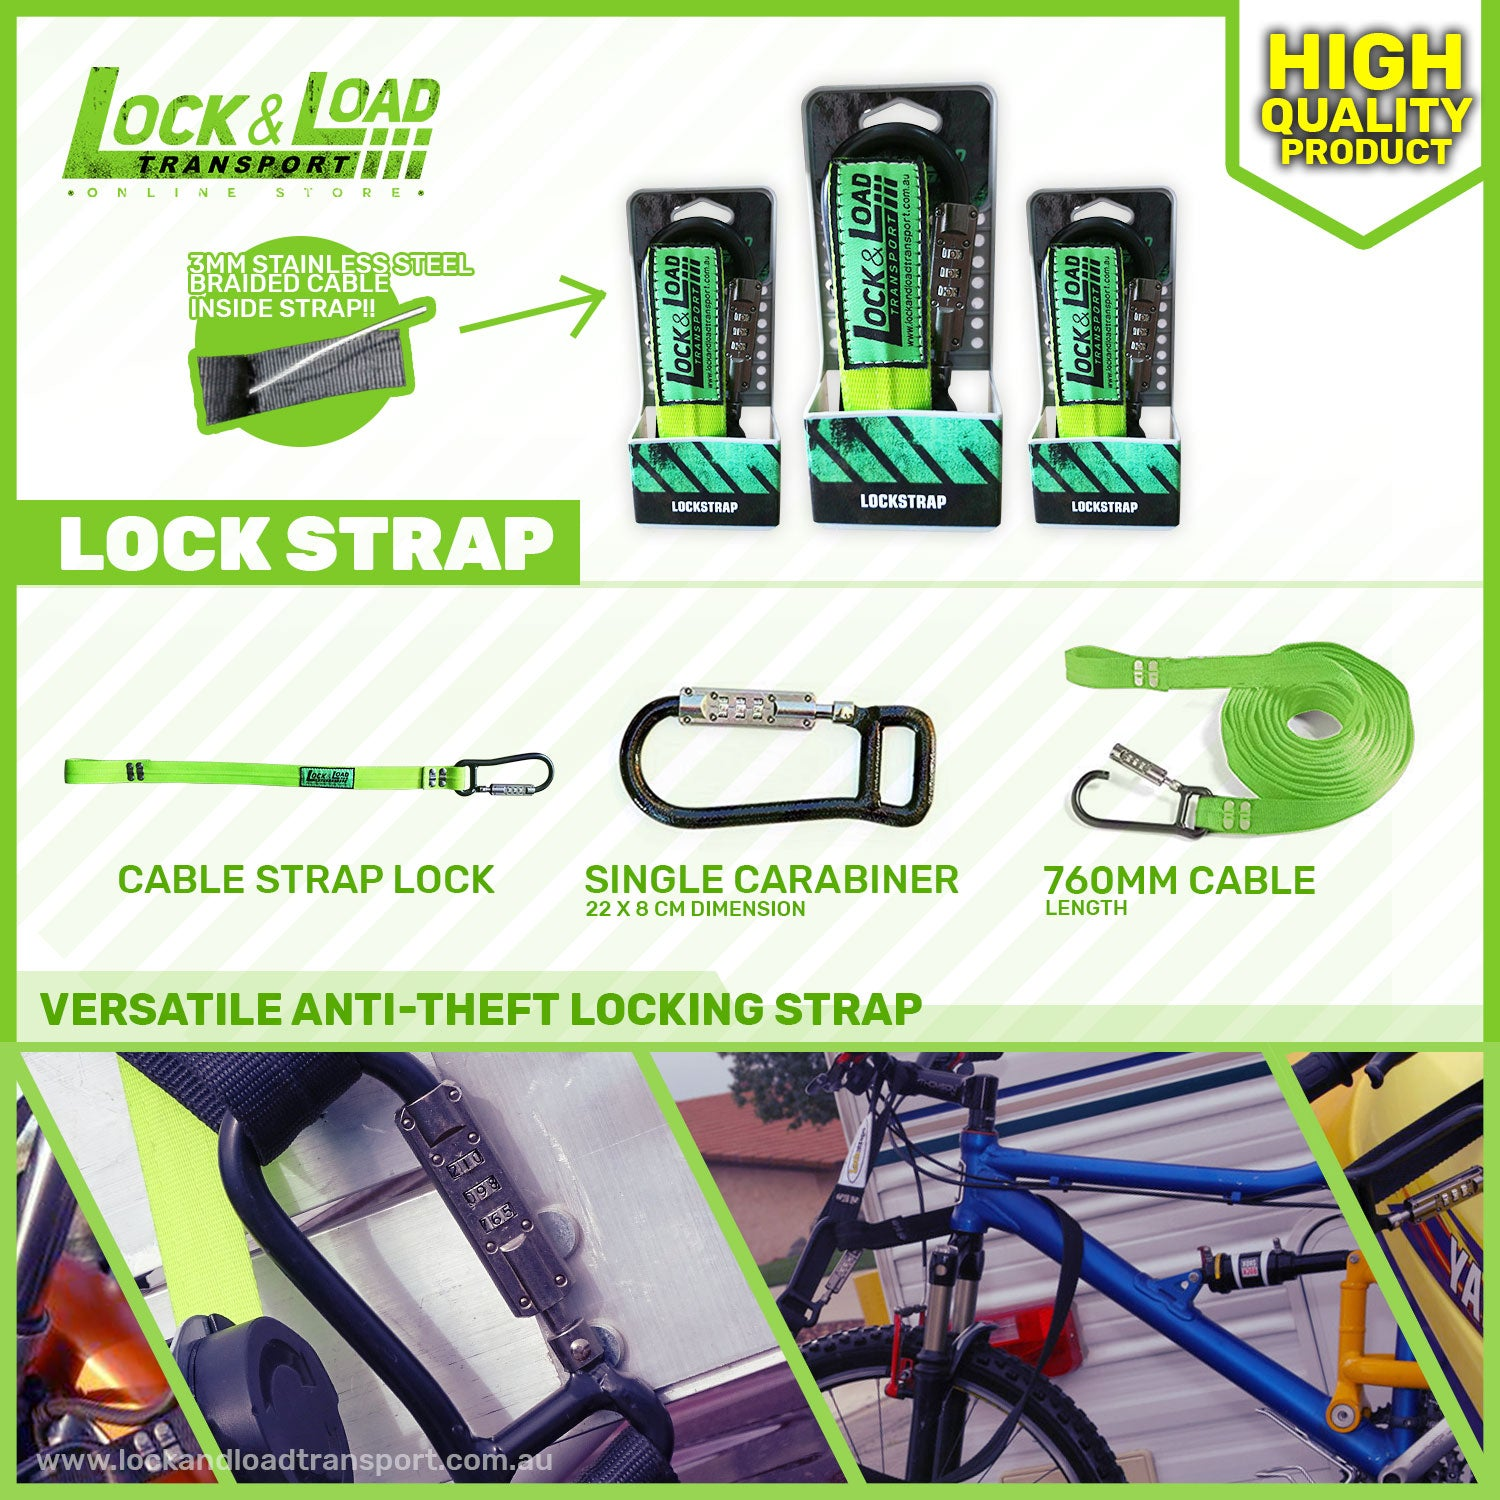 Lock and Load New Product - Lockstrap on its way to our store. Pre-order now!